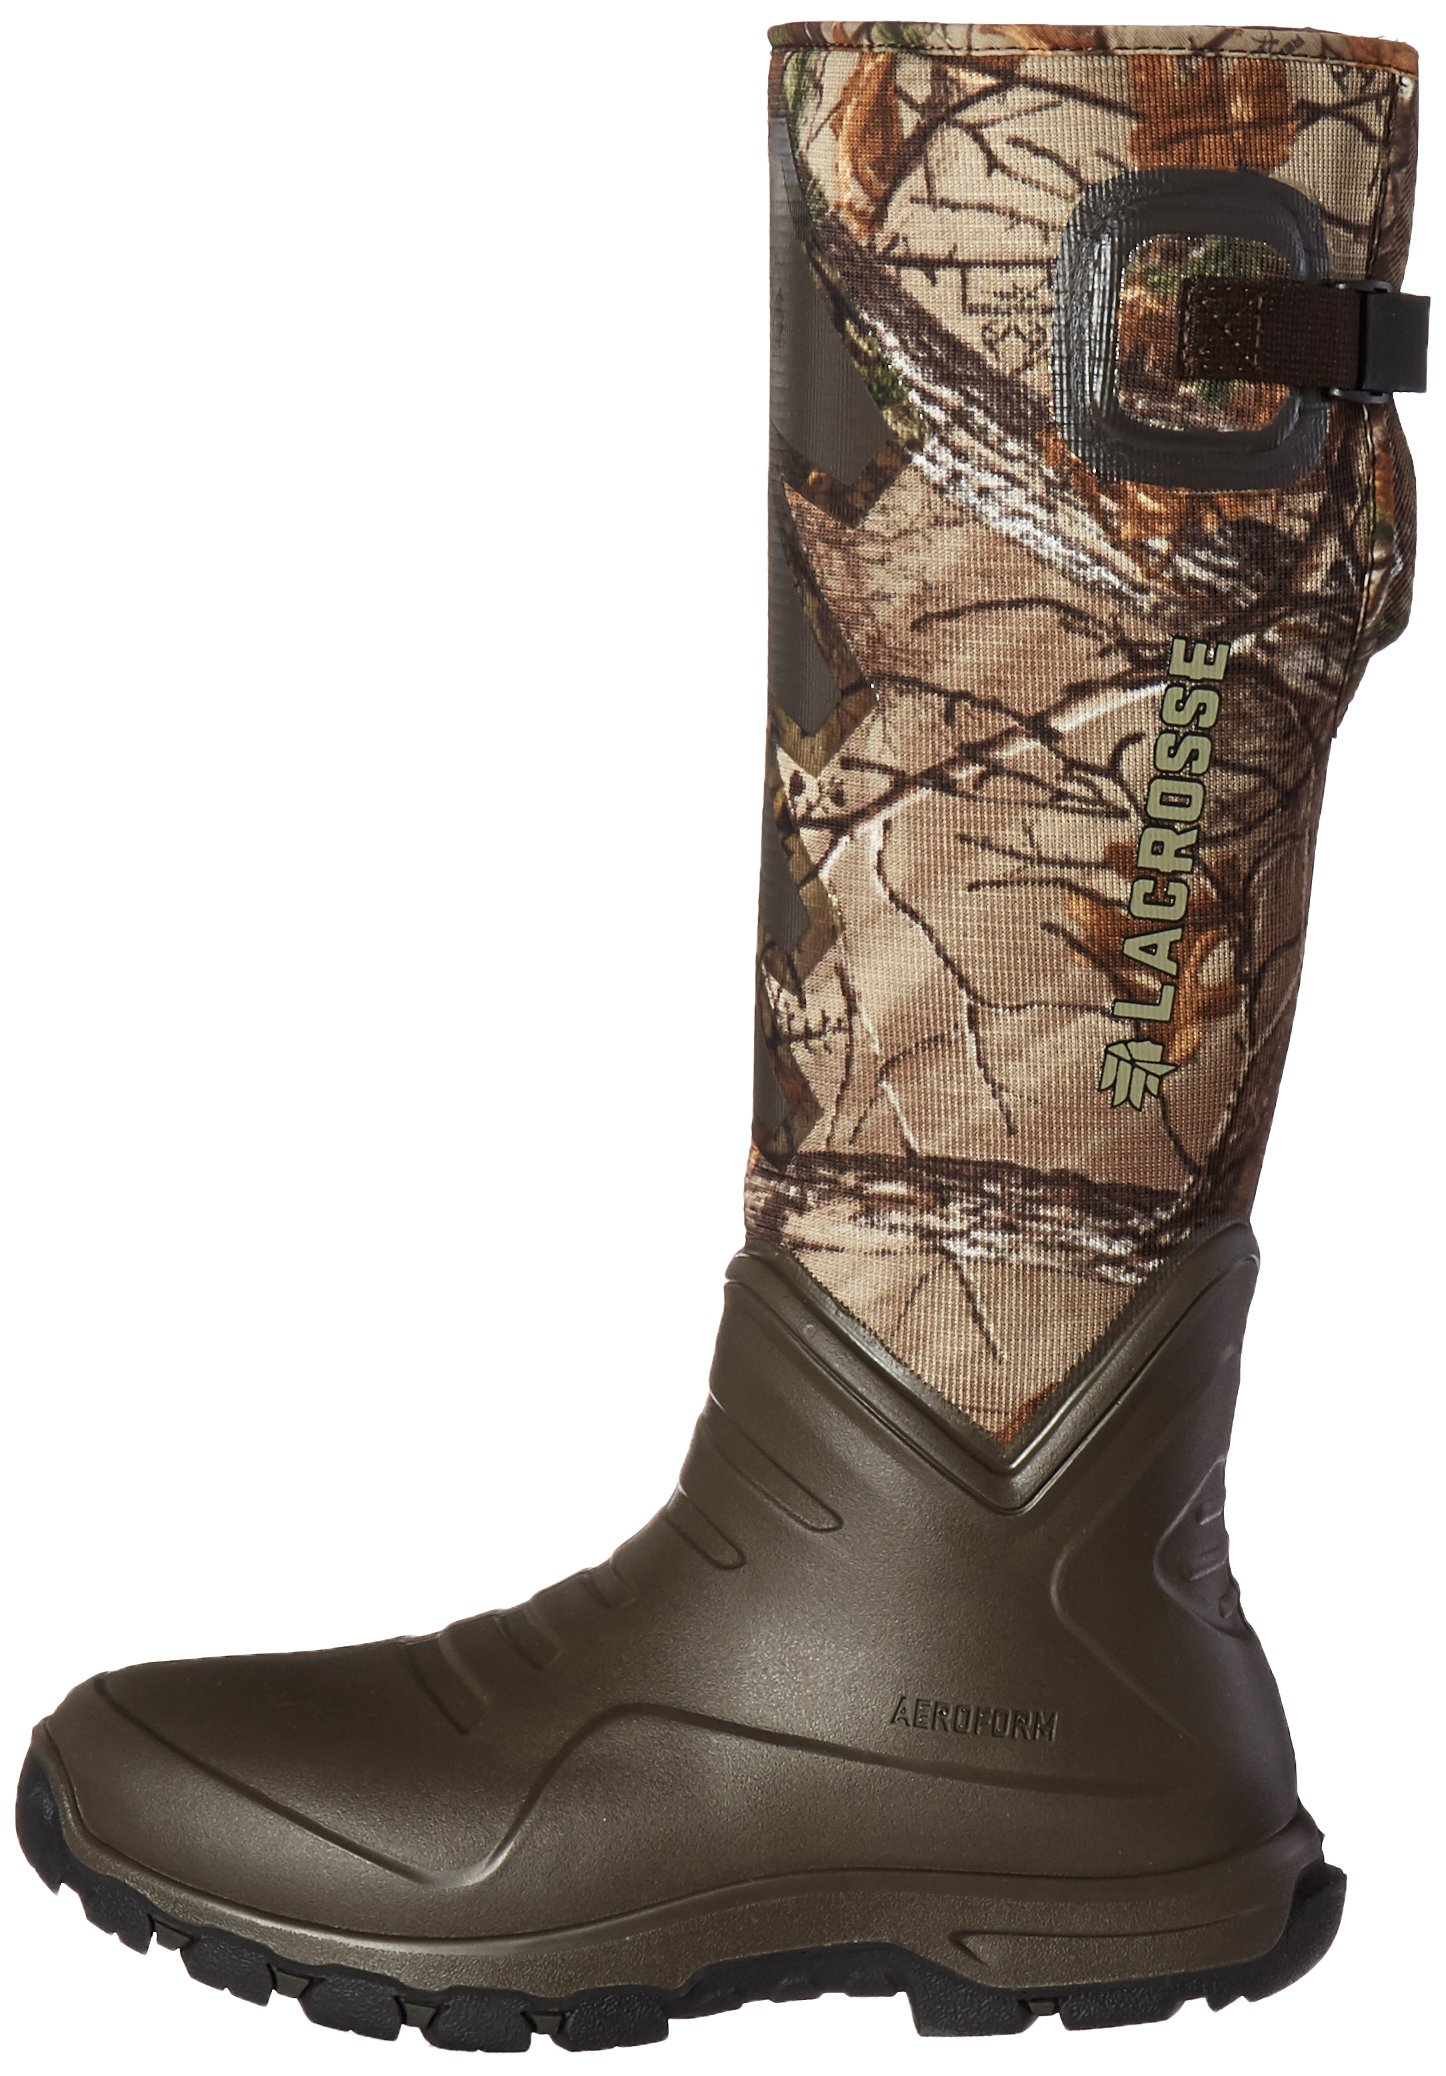 Lacrosse Men's Aerohead Sport 16'' 3.5MM Hunting Shoes Realtree Extra 13 M US by Lacrosse (Image #5)